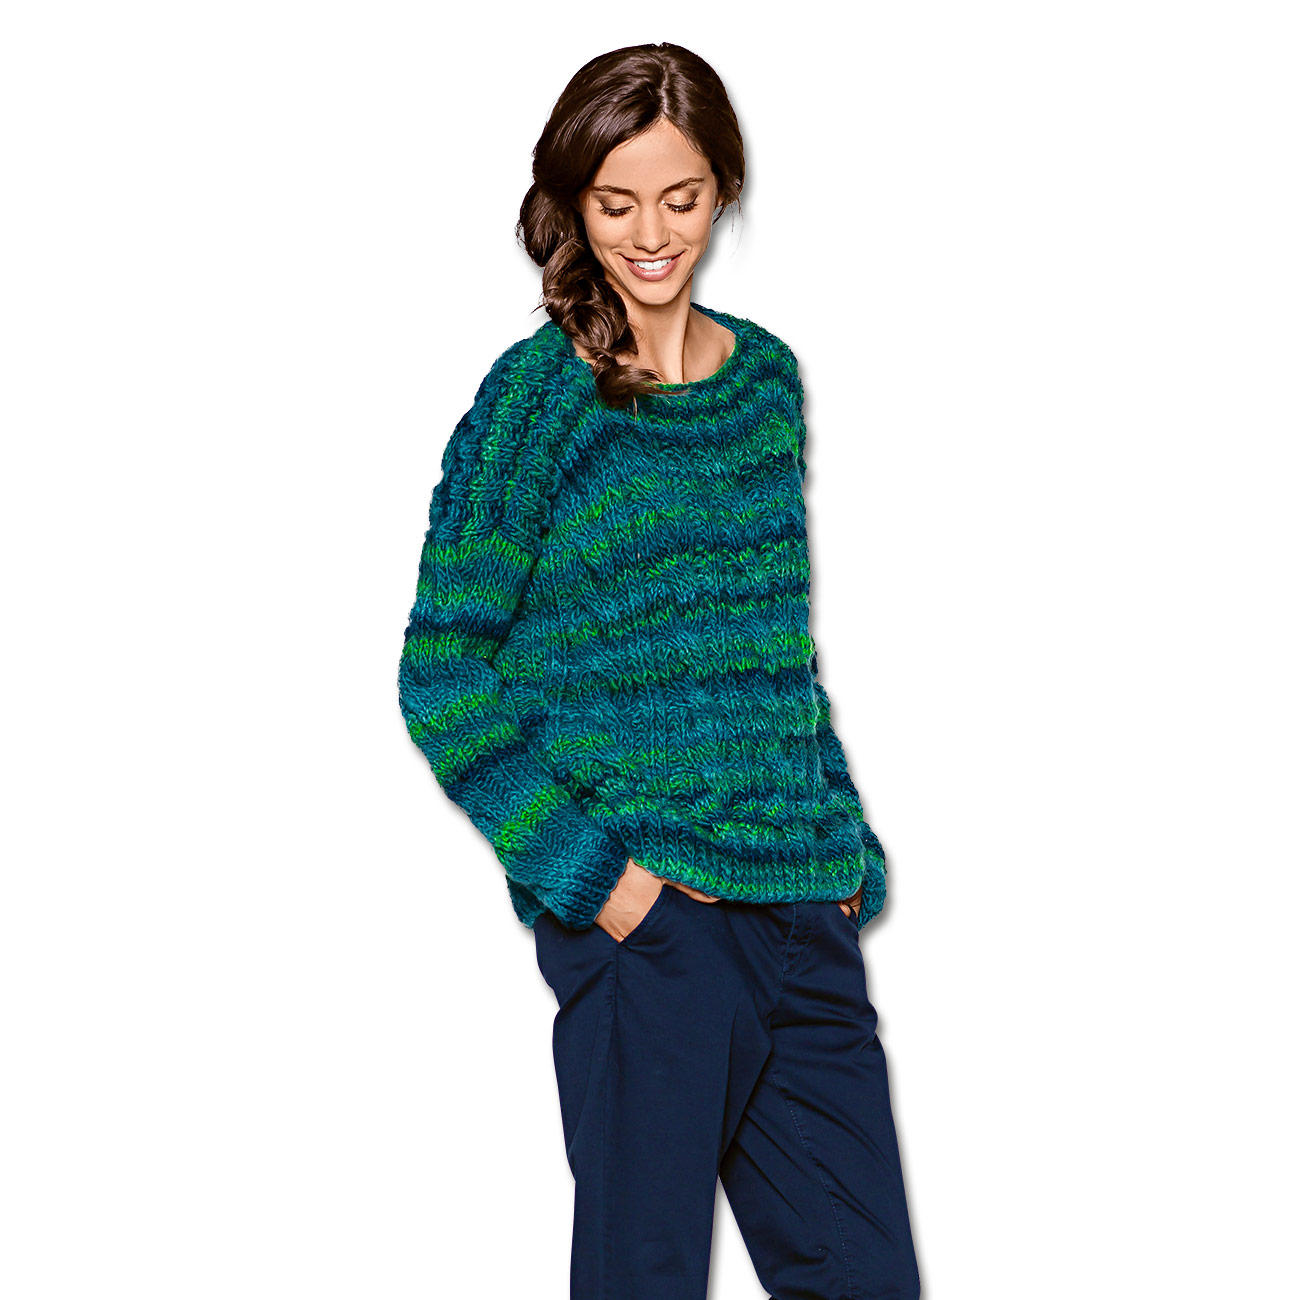 Modell 066 5 pullover aus colorida von junghans wolle 1 - Junghanns wolle ...